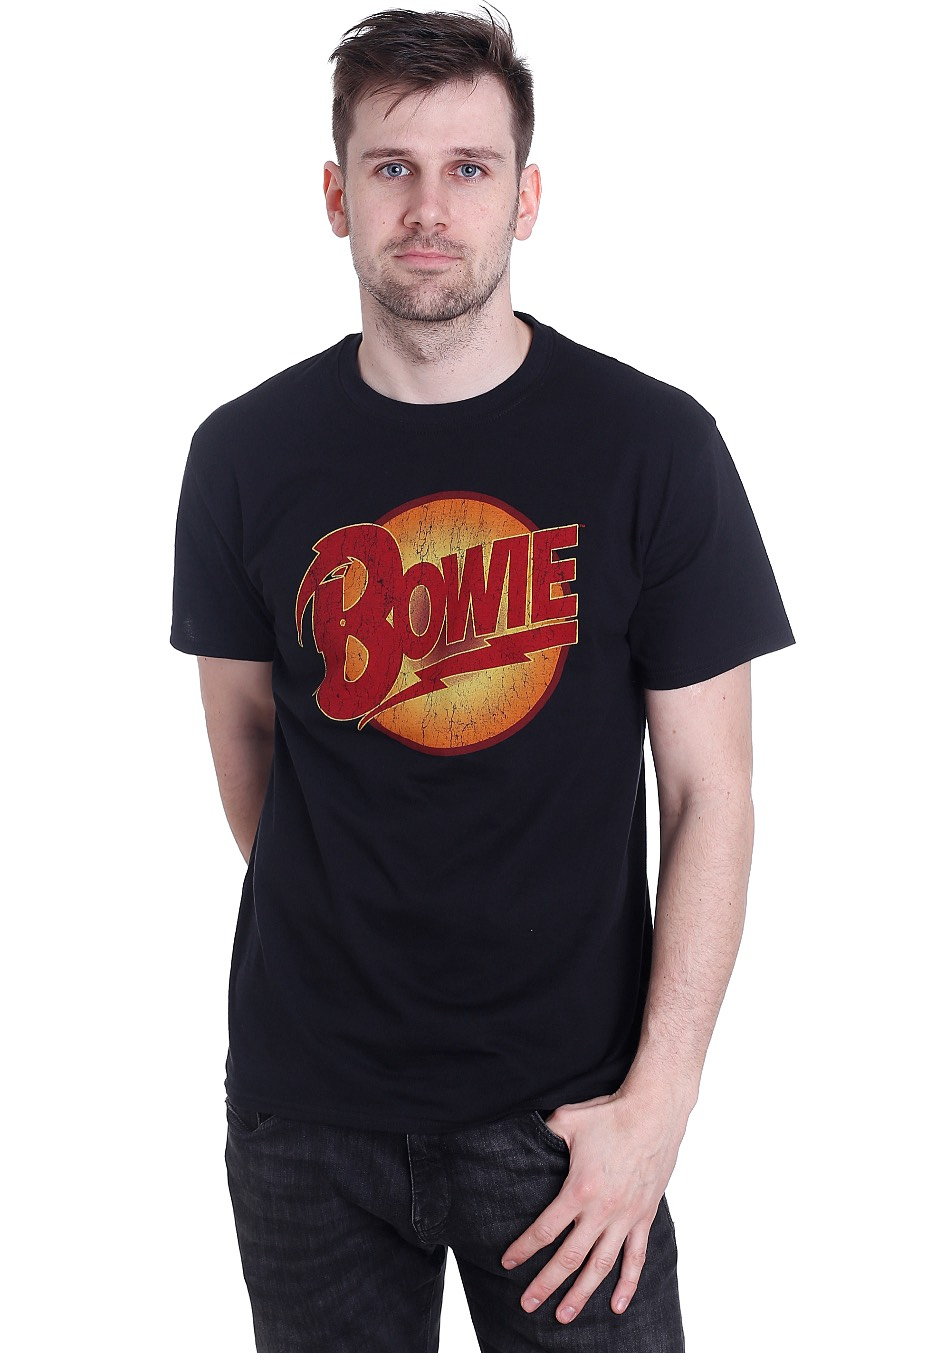 Vintage David Bowie Shirt